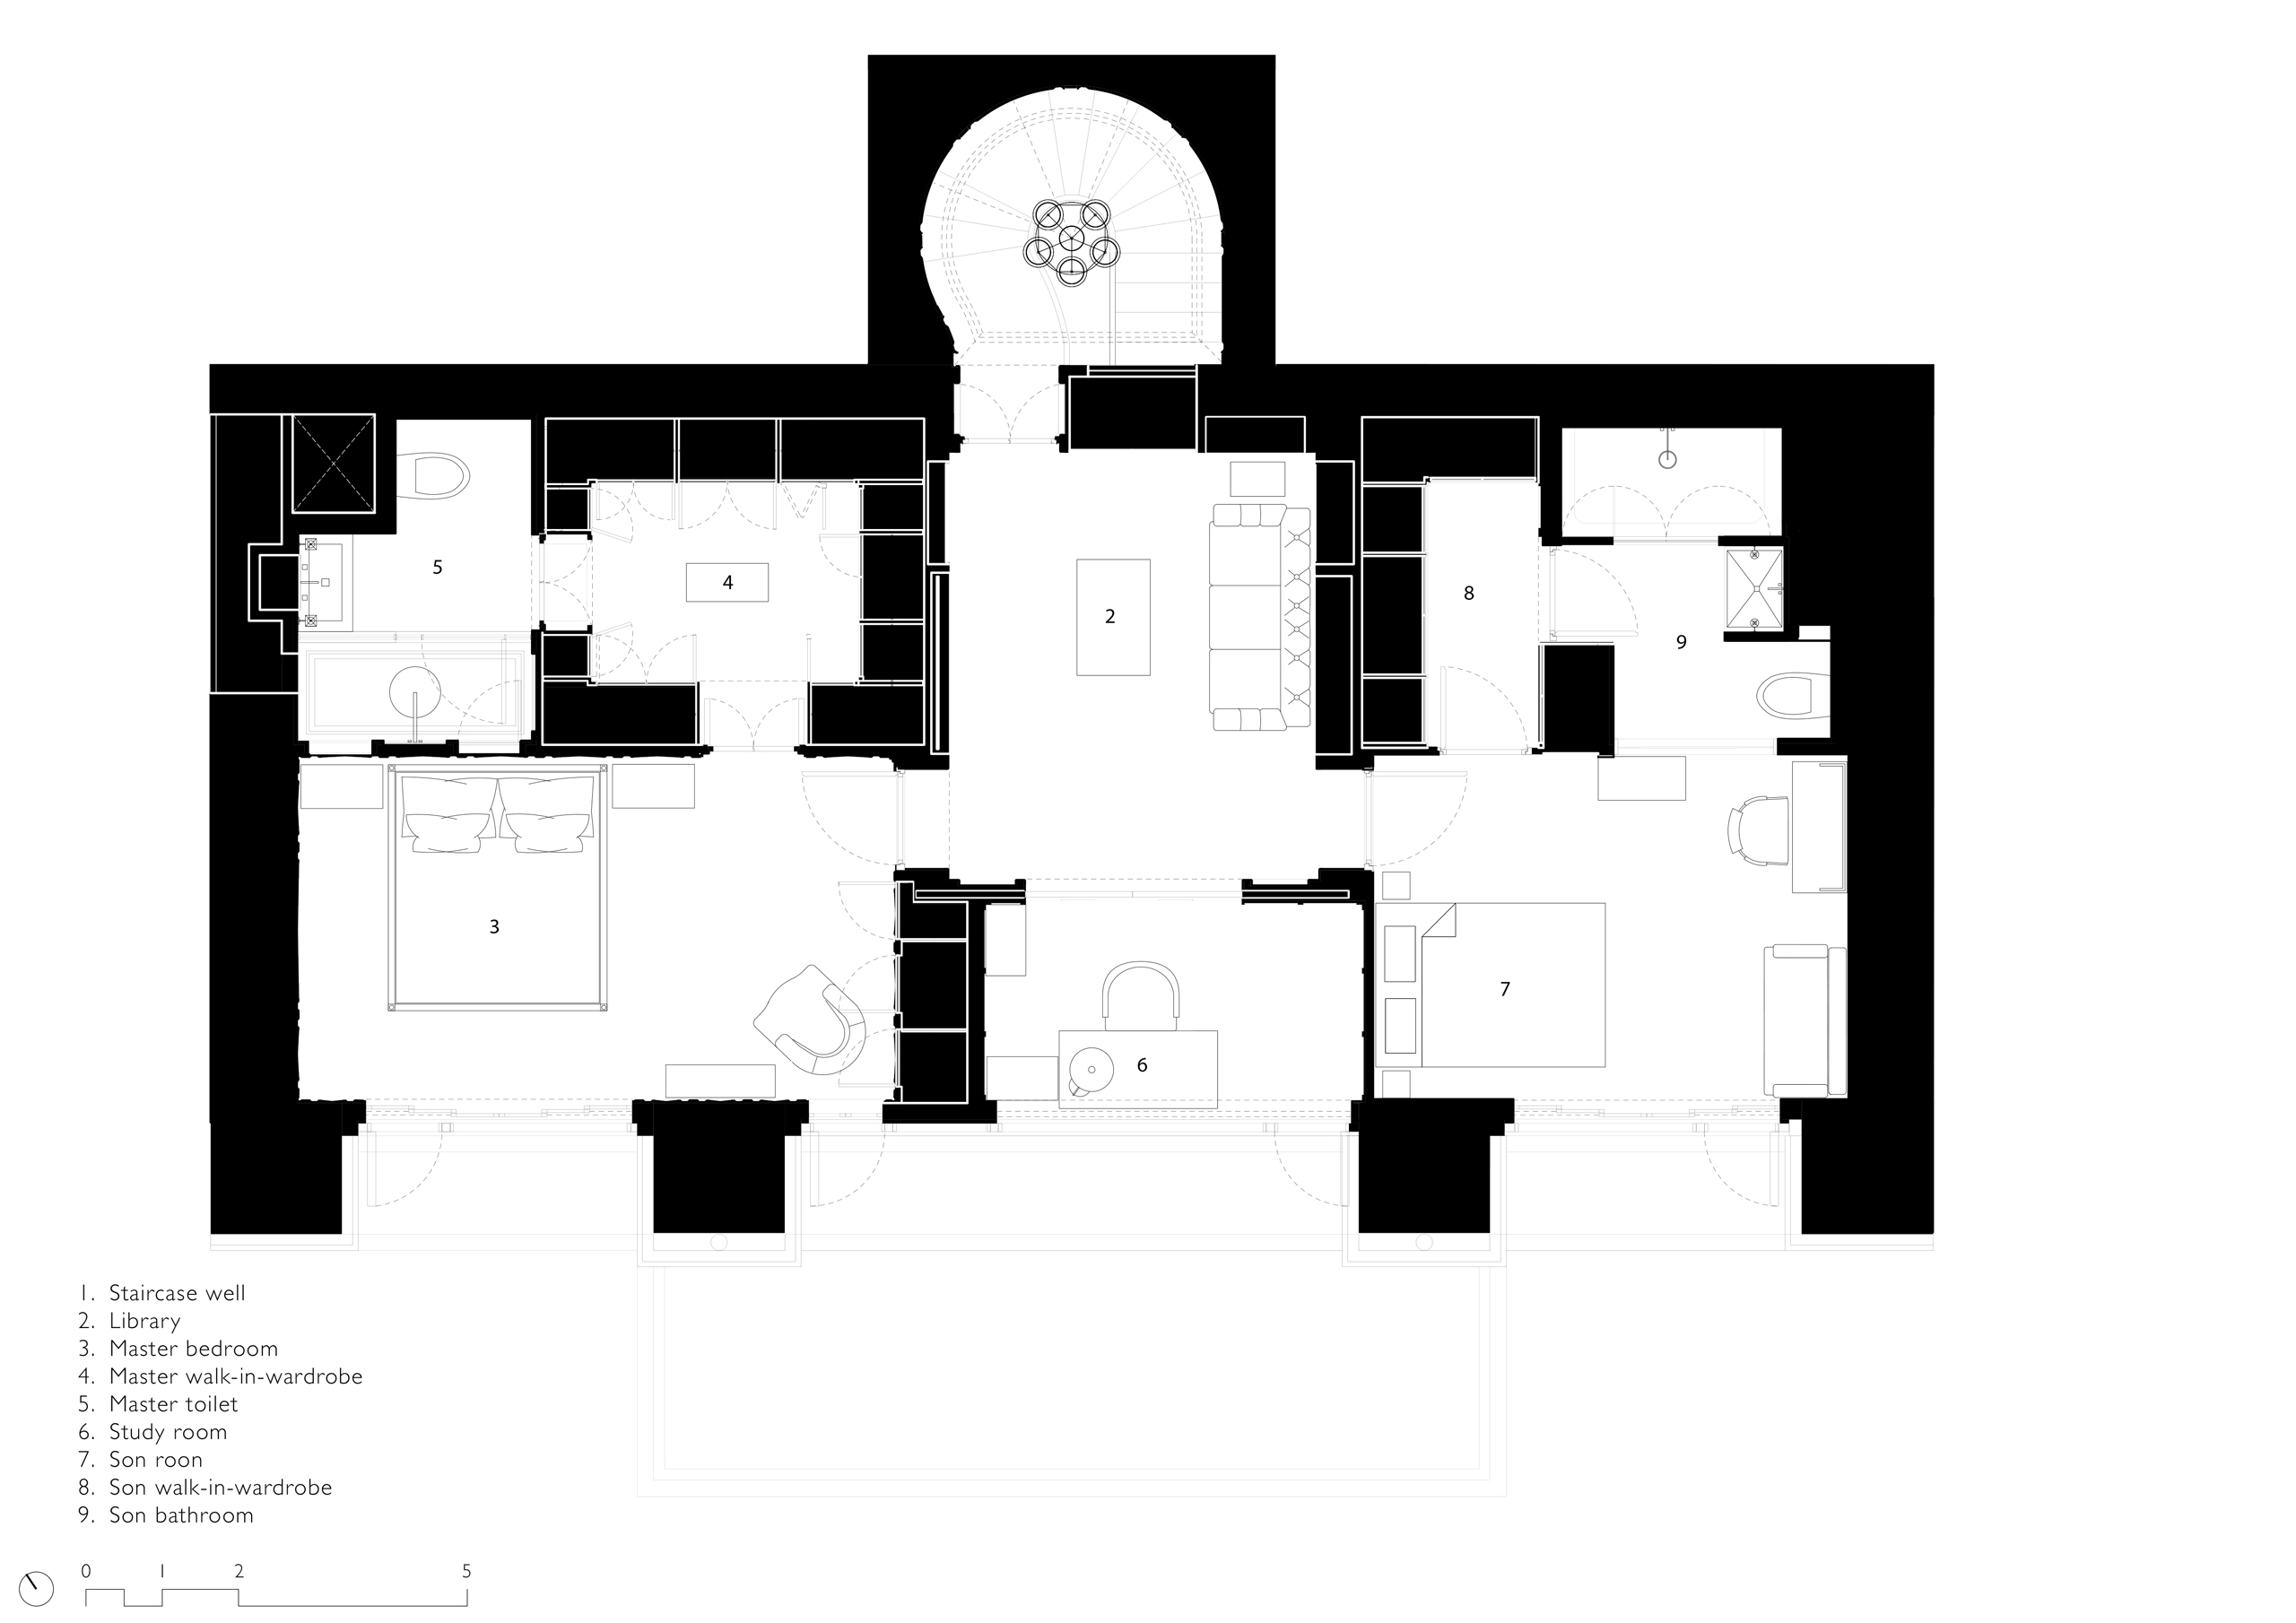 Interior Design of Apartment in Mumbai - floor plan